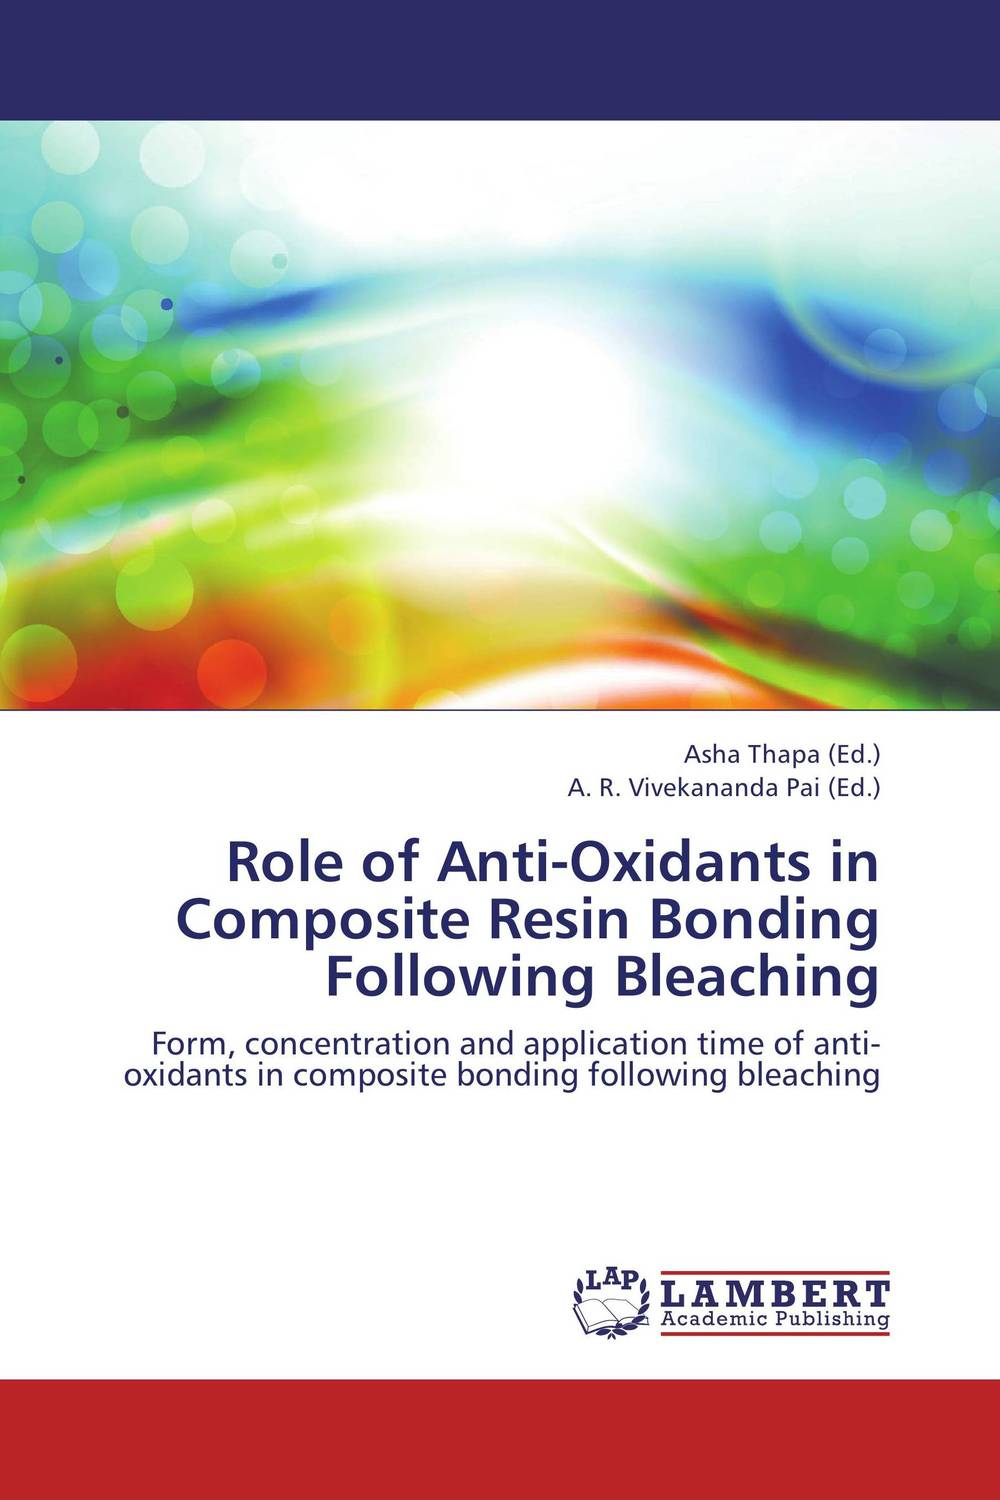 Role of Anti-Oxidants in Composite Resin Bonding Following Bleaching karanprakash singh ramanpreet kaur bhullar and sumit kochhar forensic dentistry teeth and their secrets